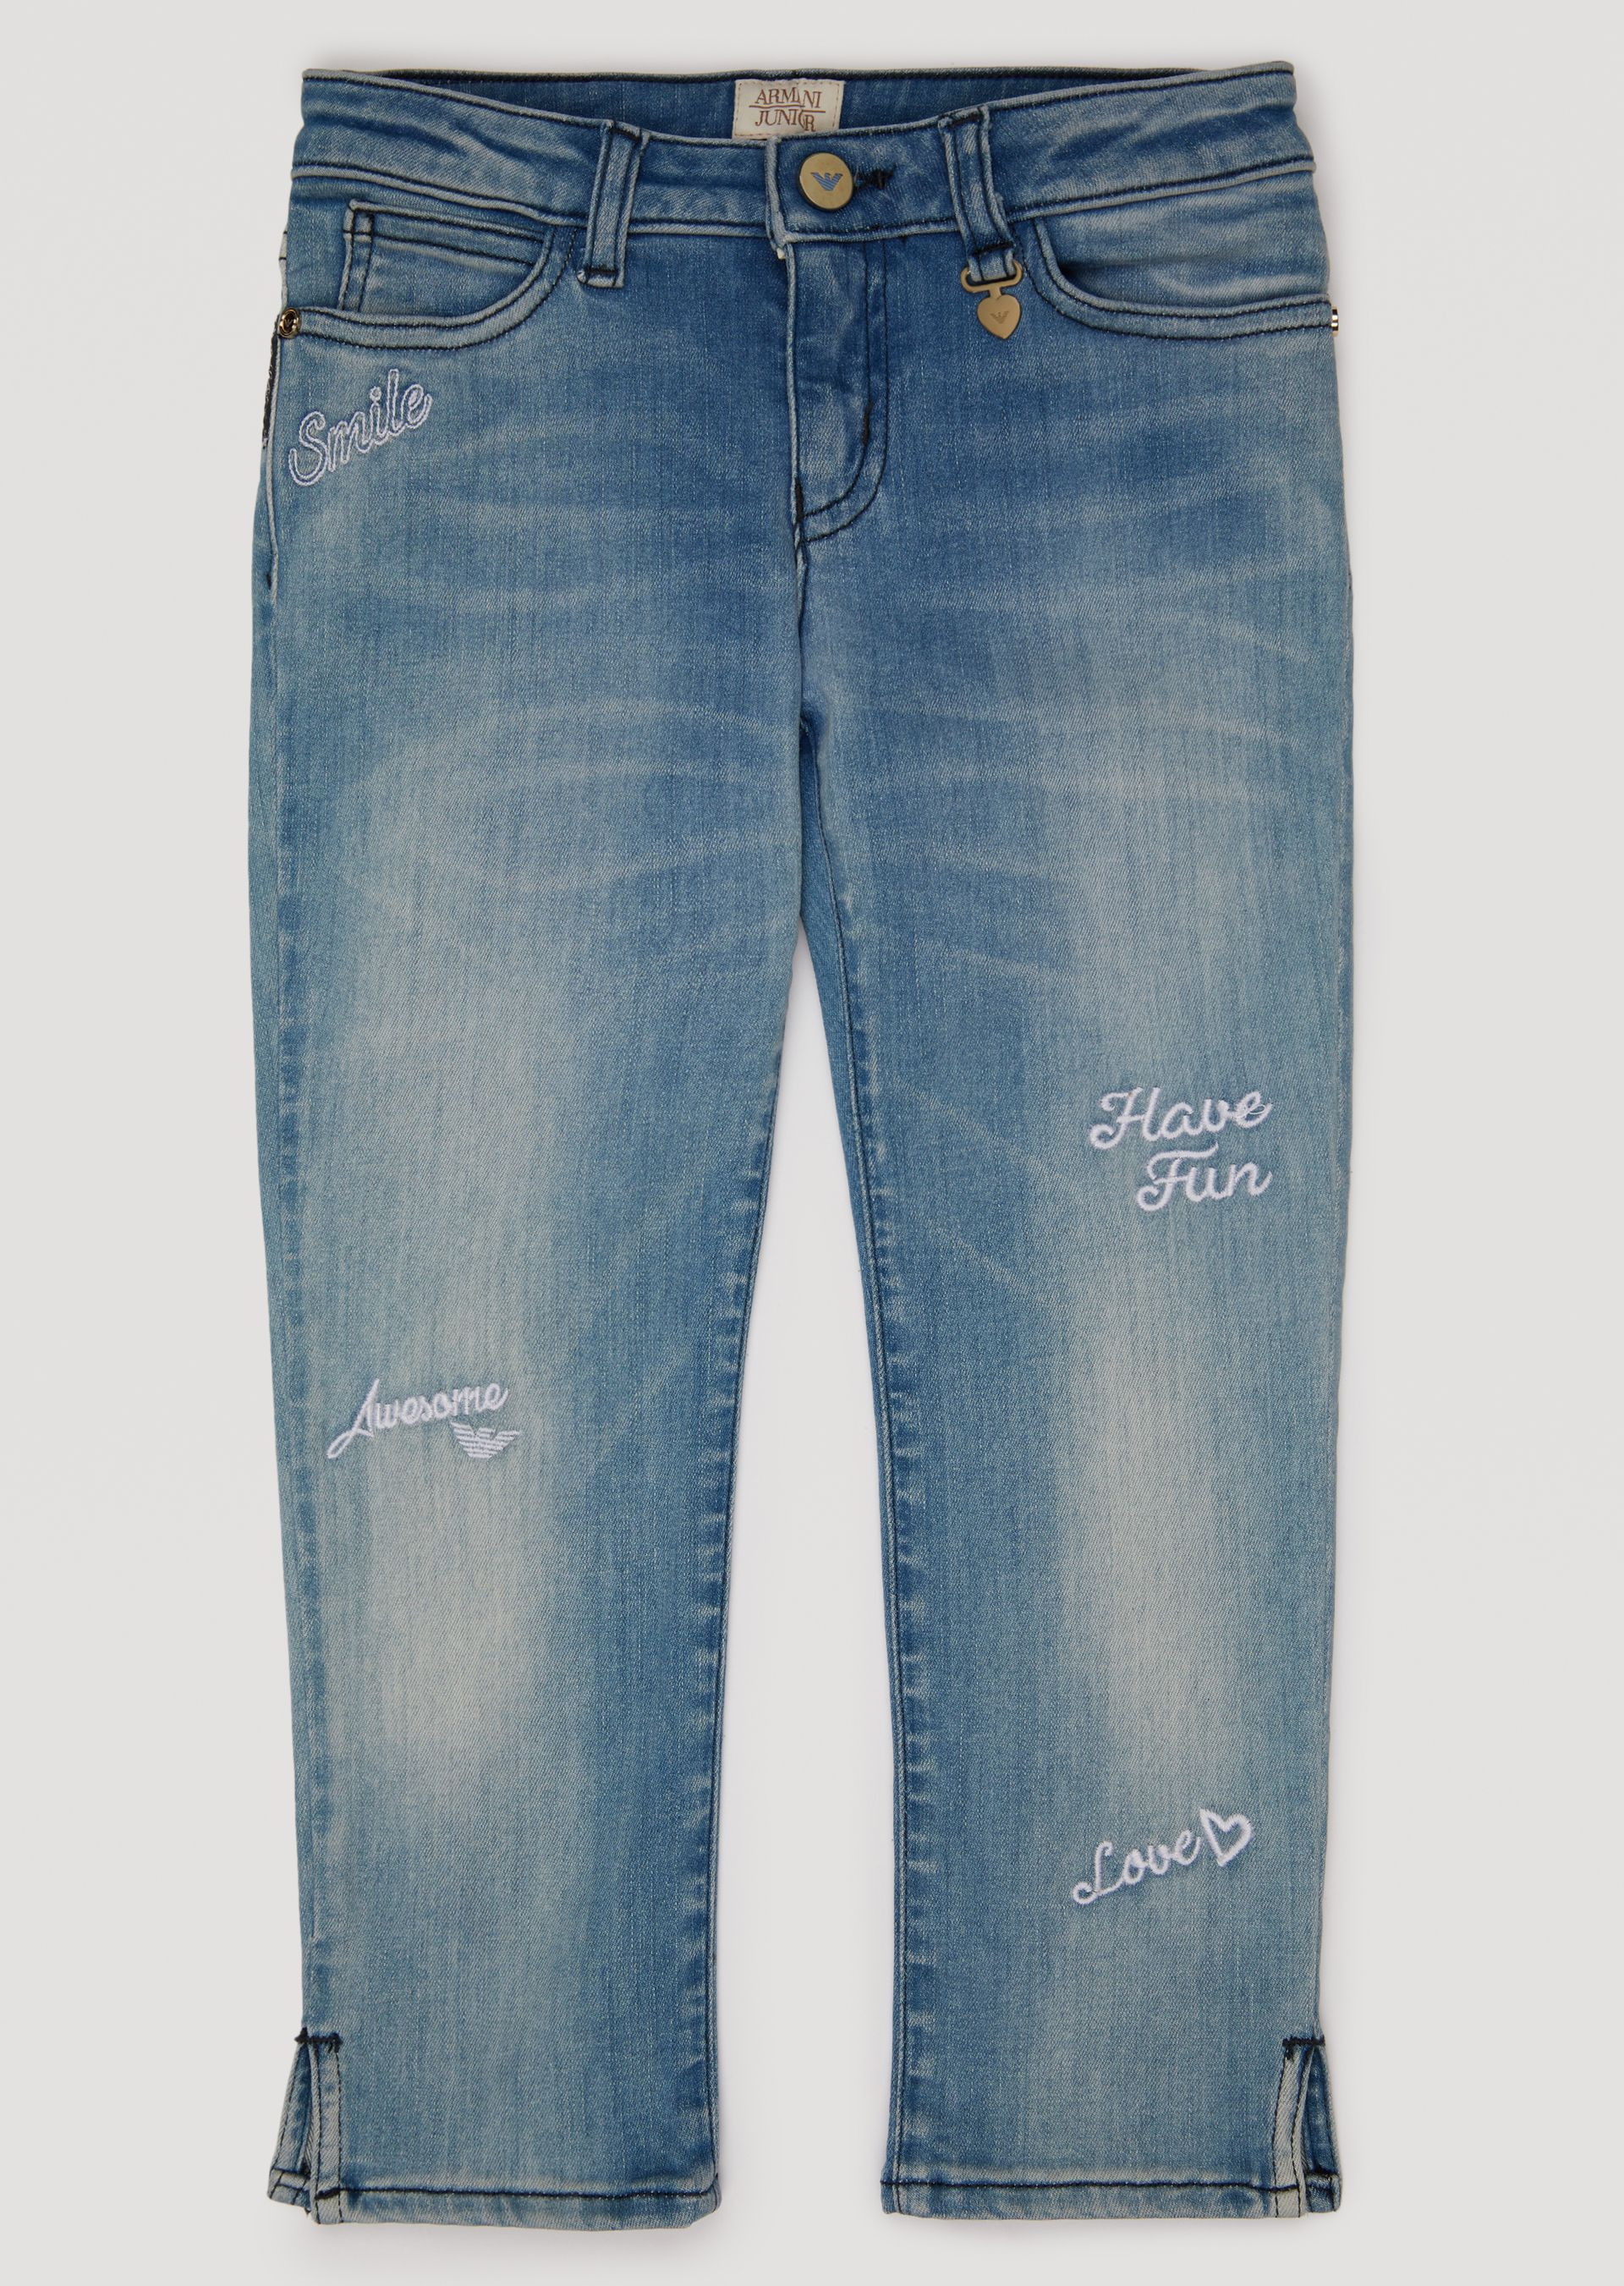 OFFICIAL STORE EMPORIO ARMANI - Jeans - Jeans on armani.com